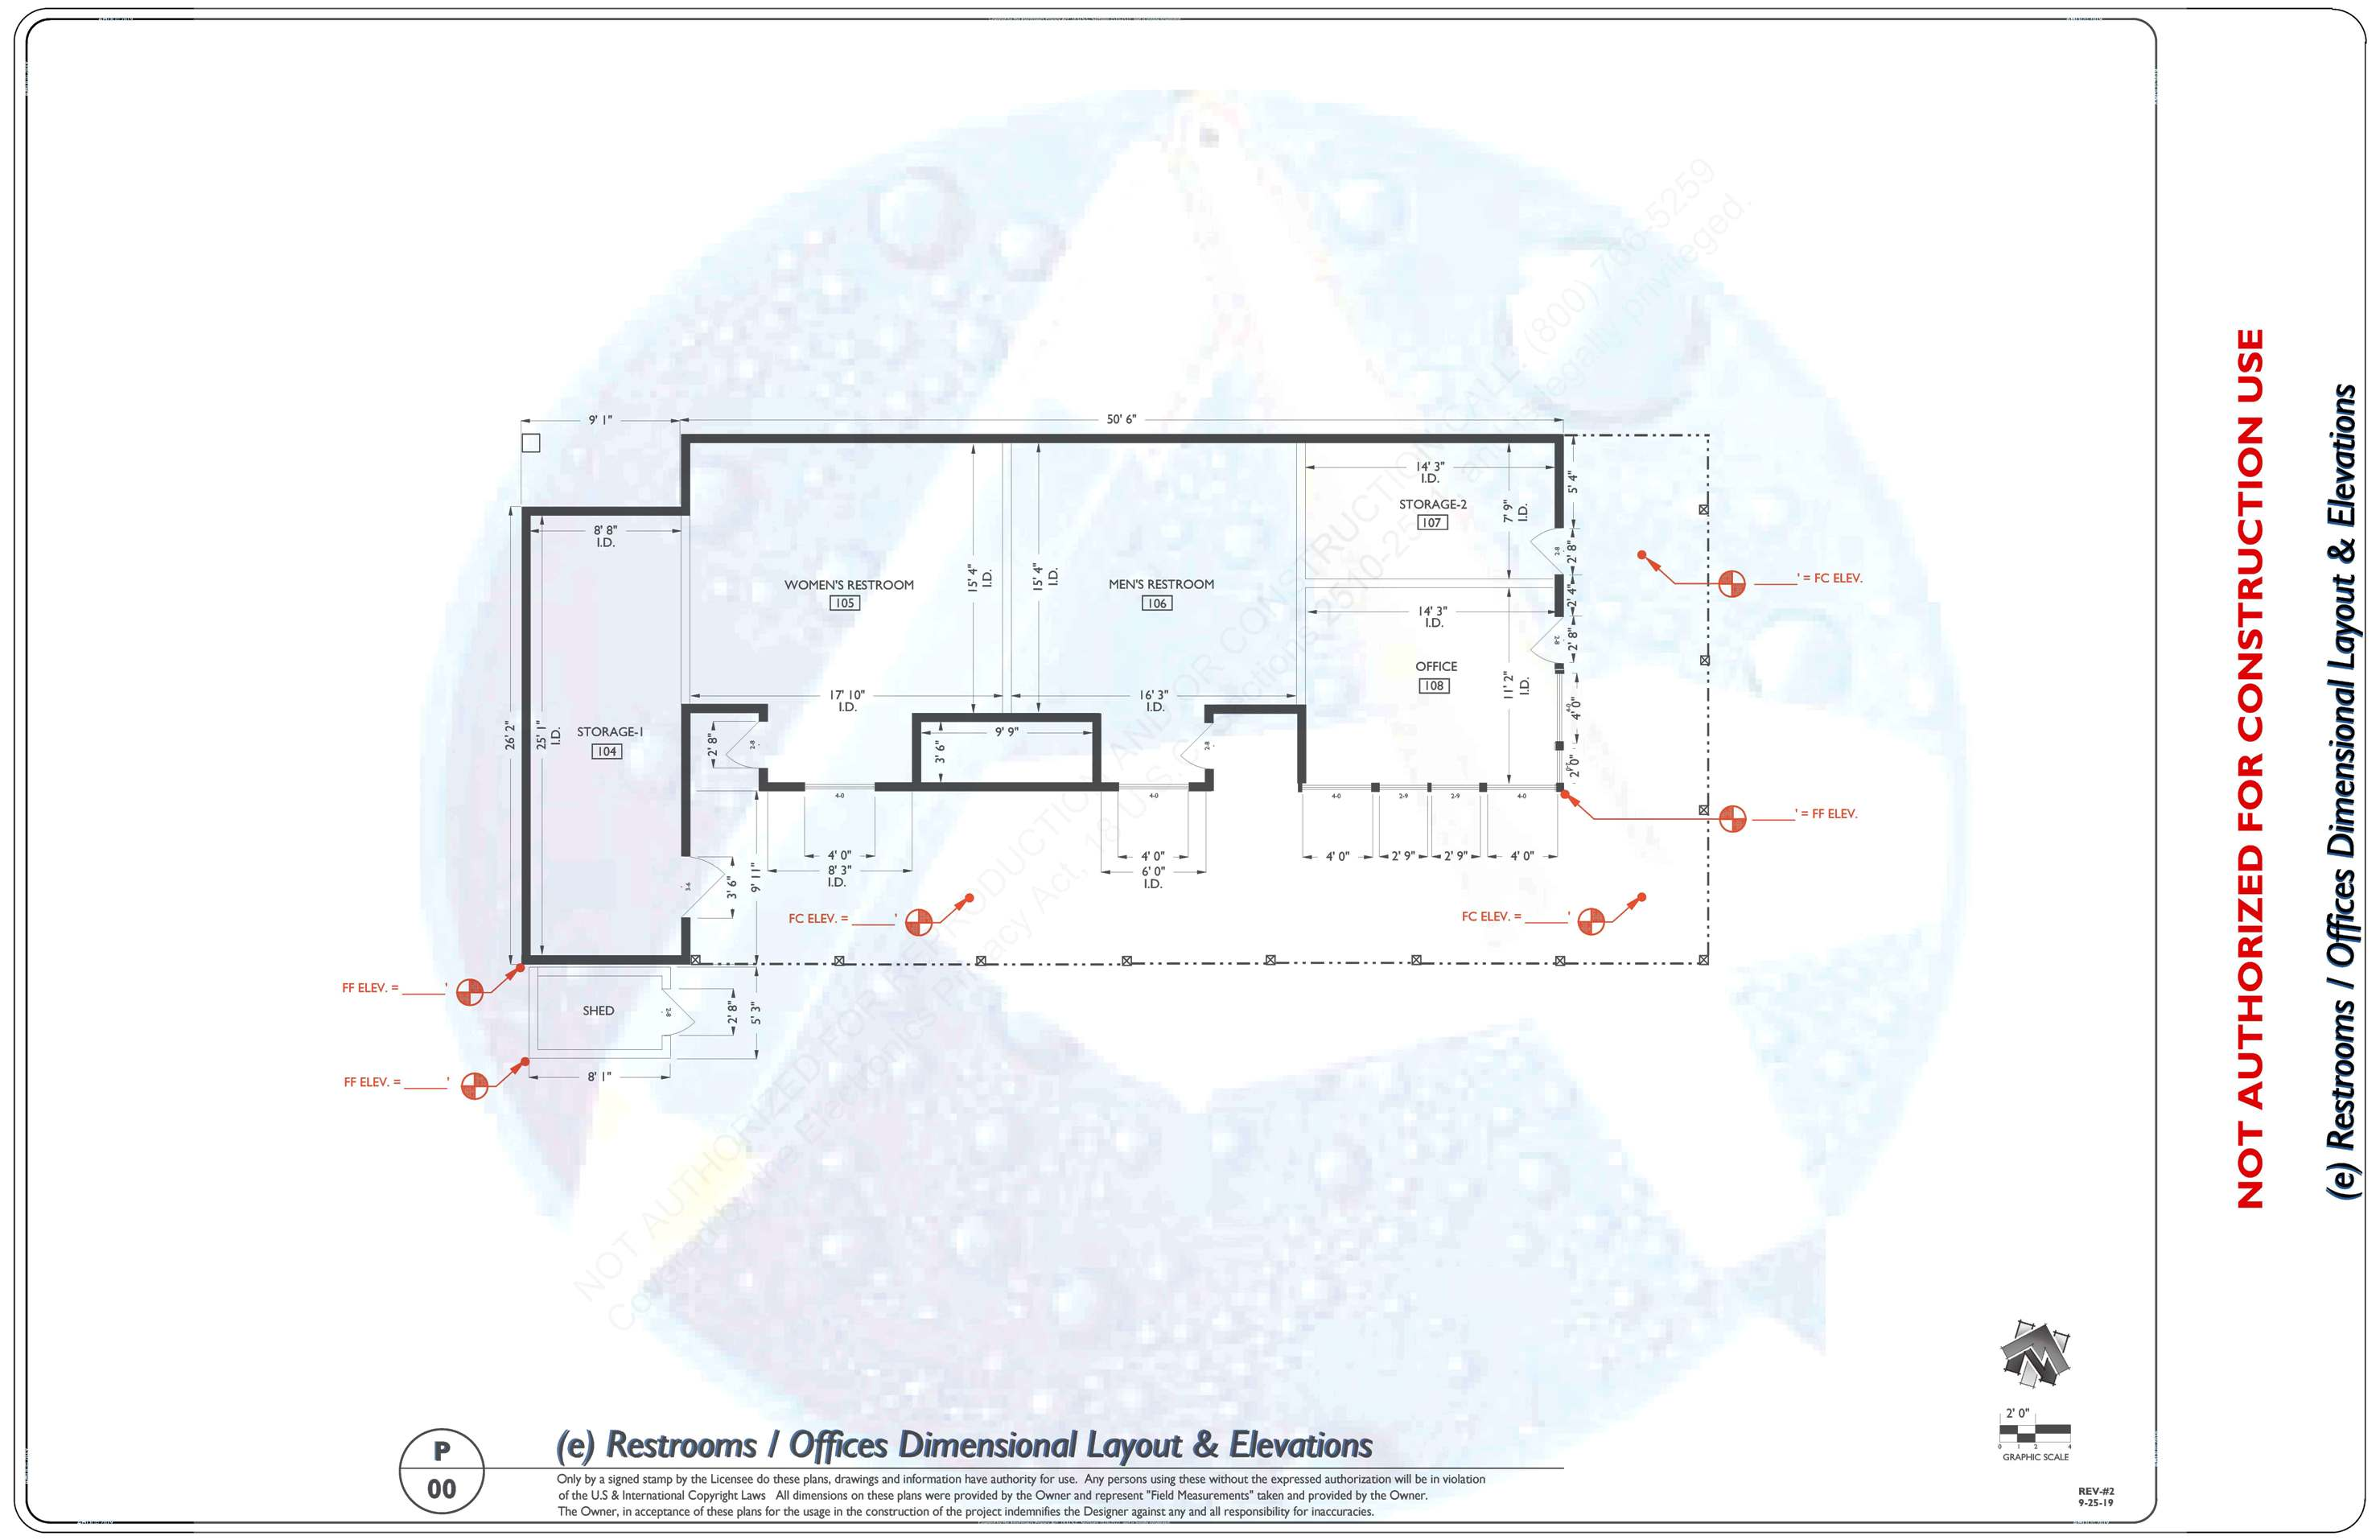 EXISTING-SITE-PLAN-RESSTROOMS